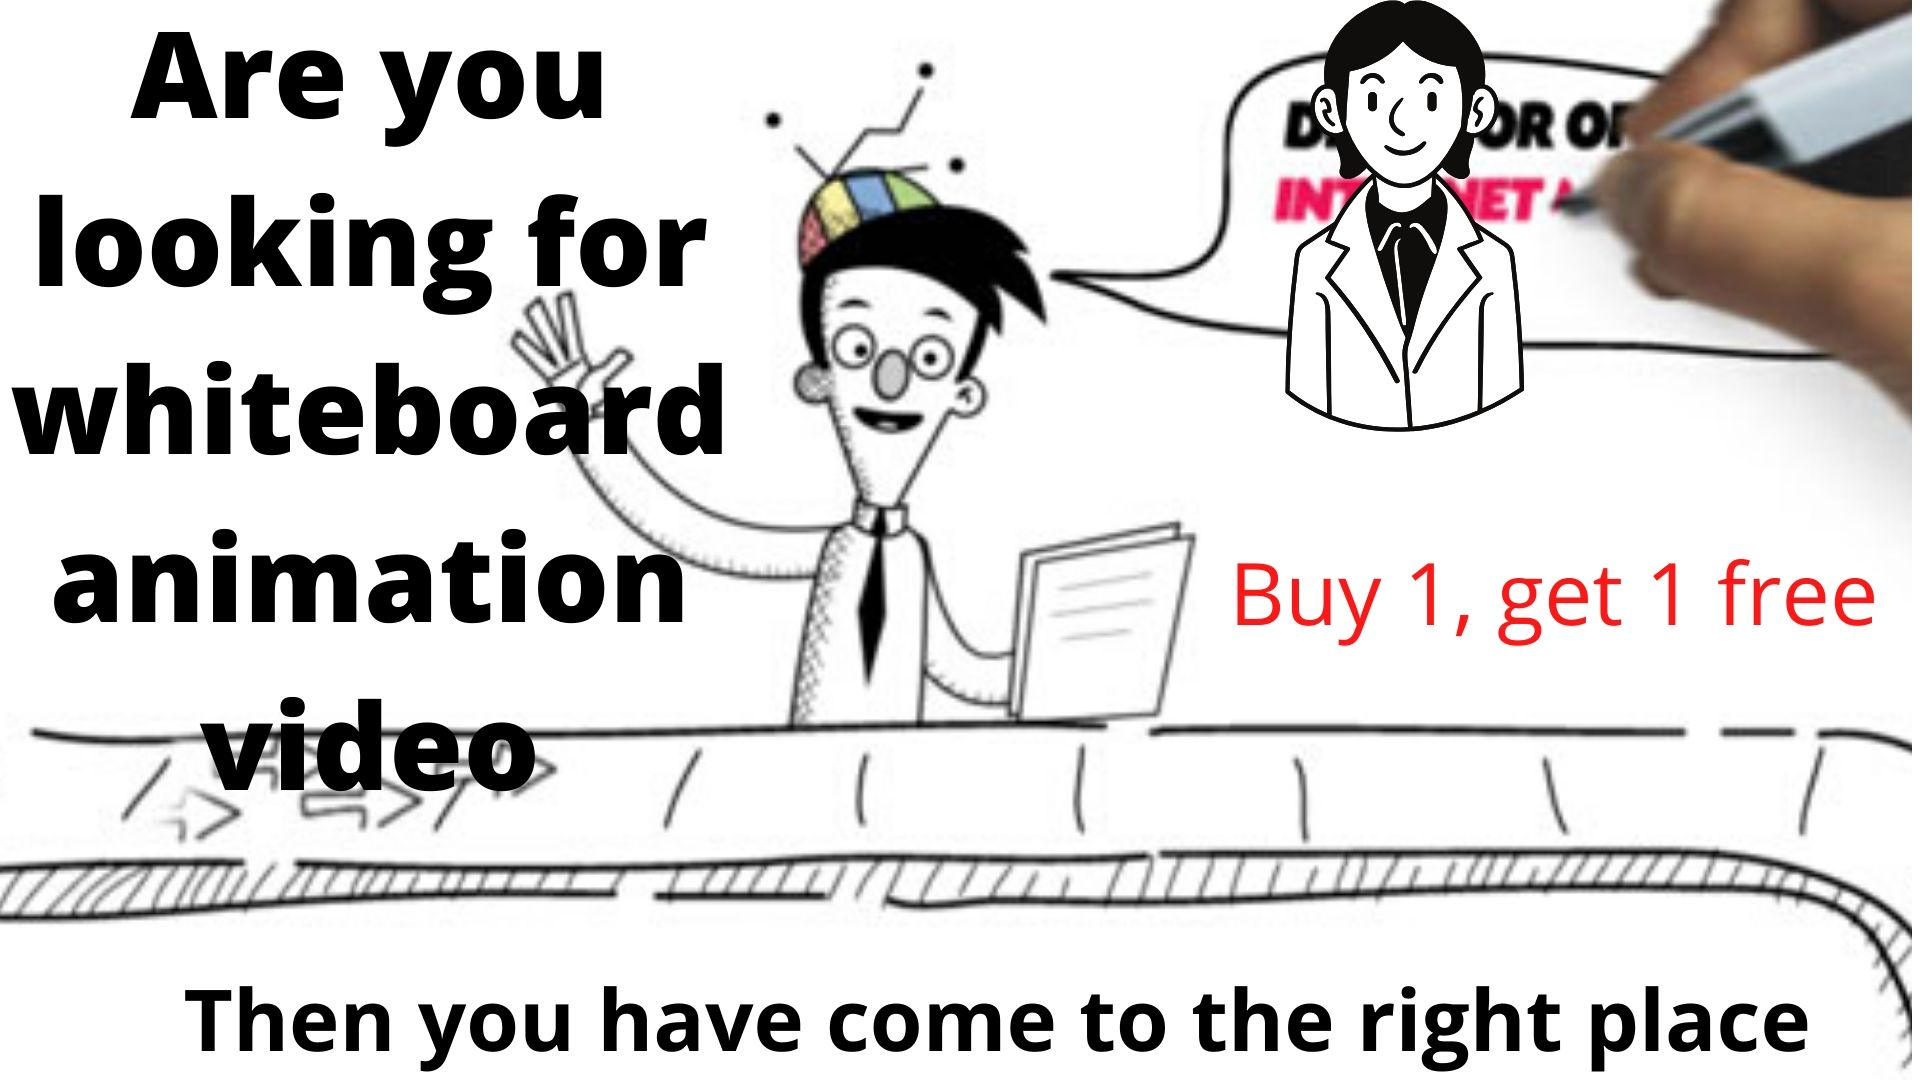 Get whiteboard video Animation + 1 free in any language of your choice